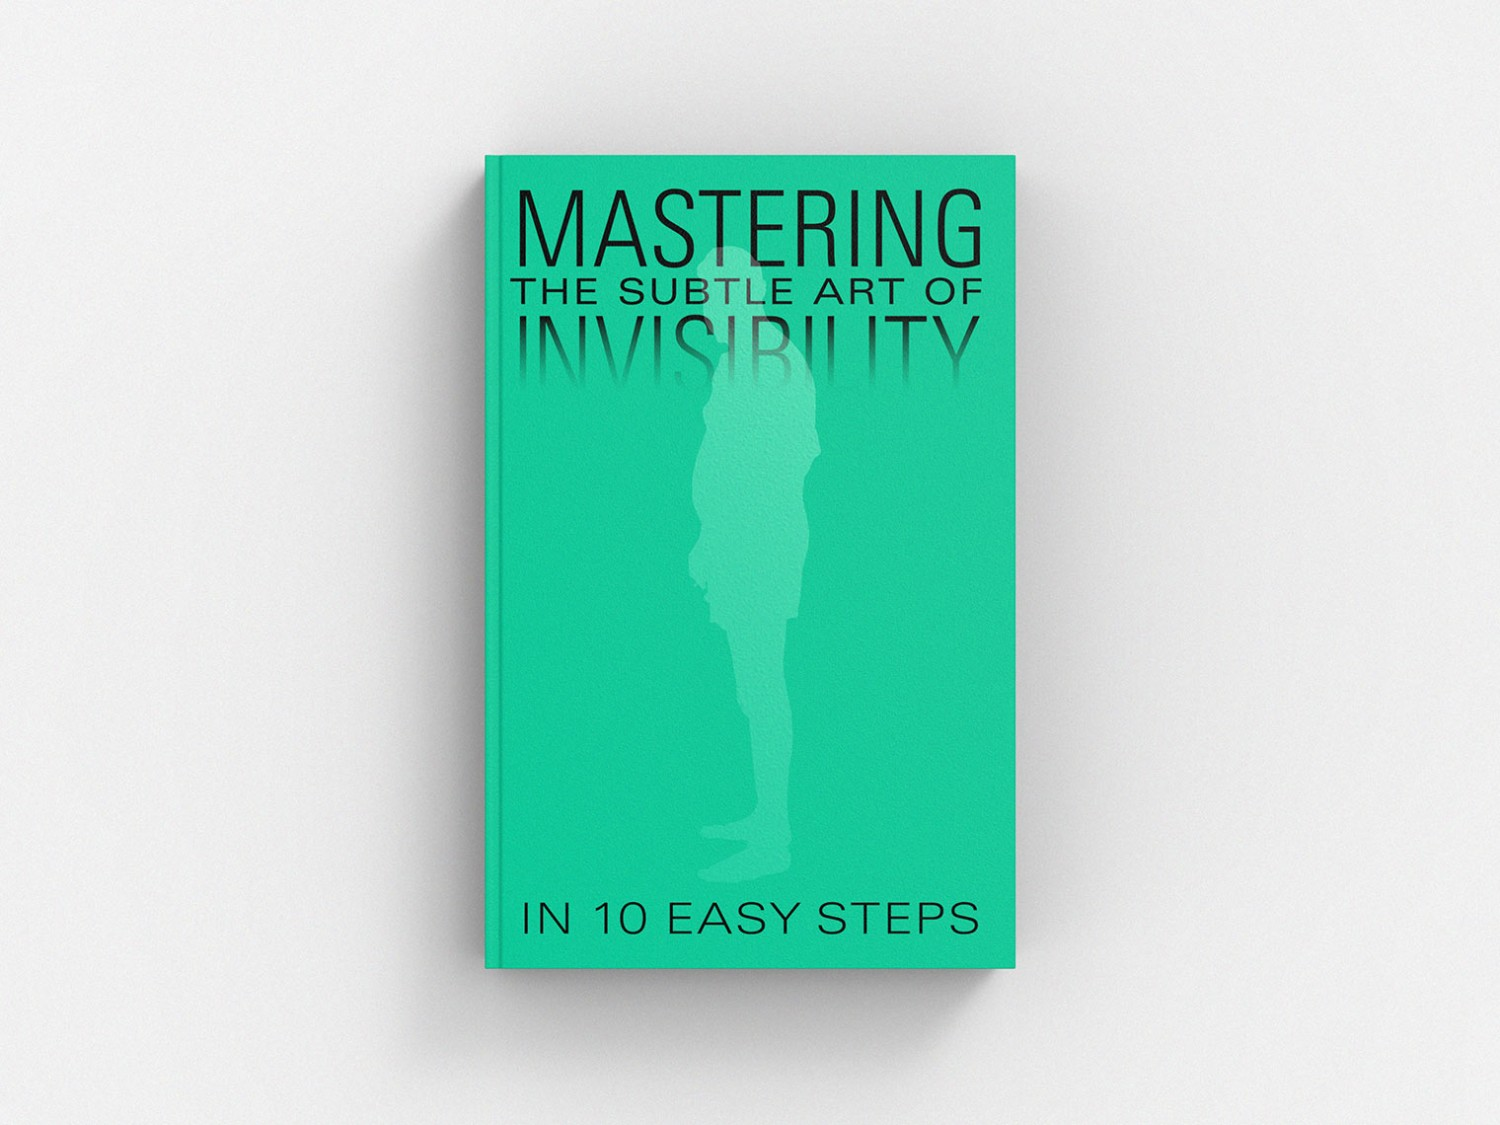 Mastering the Subtle Art of Invisibility in 10 Easy Steps